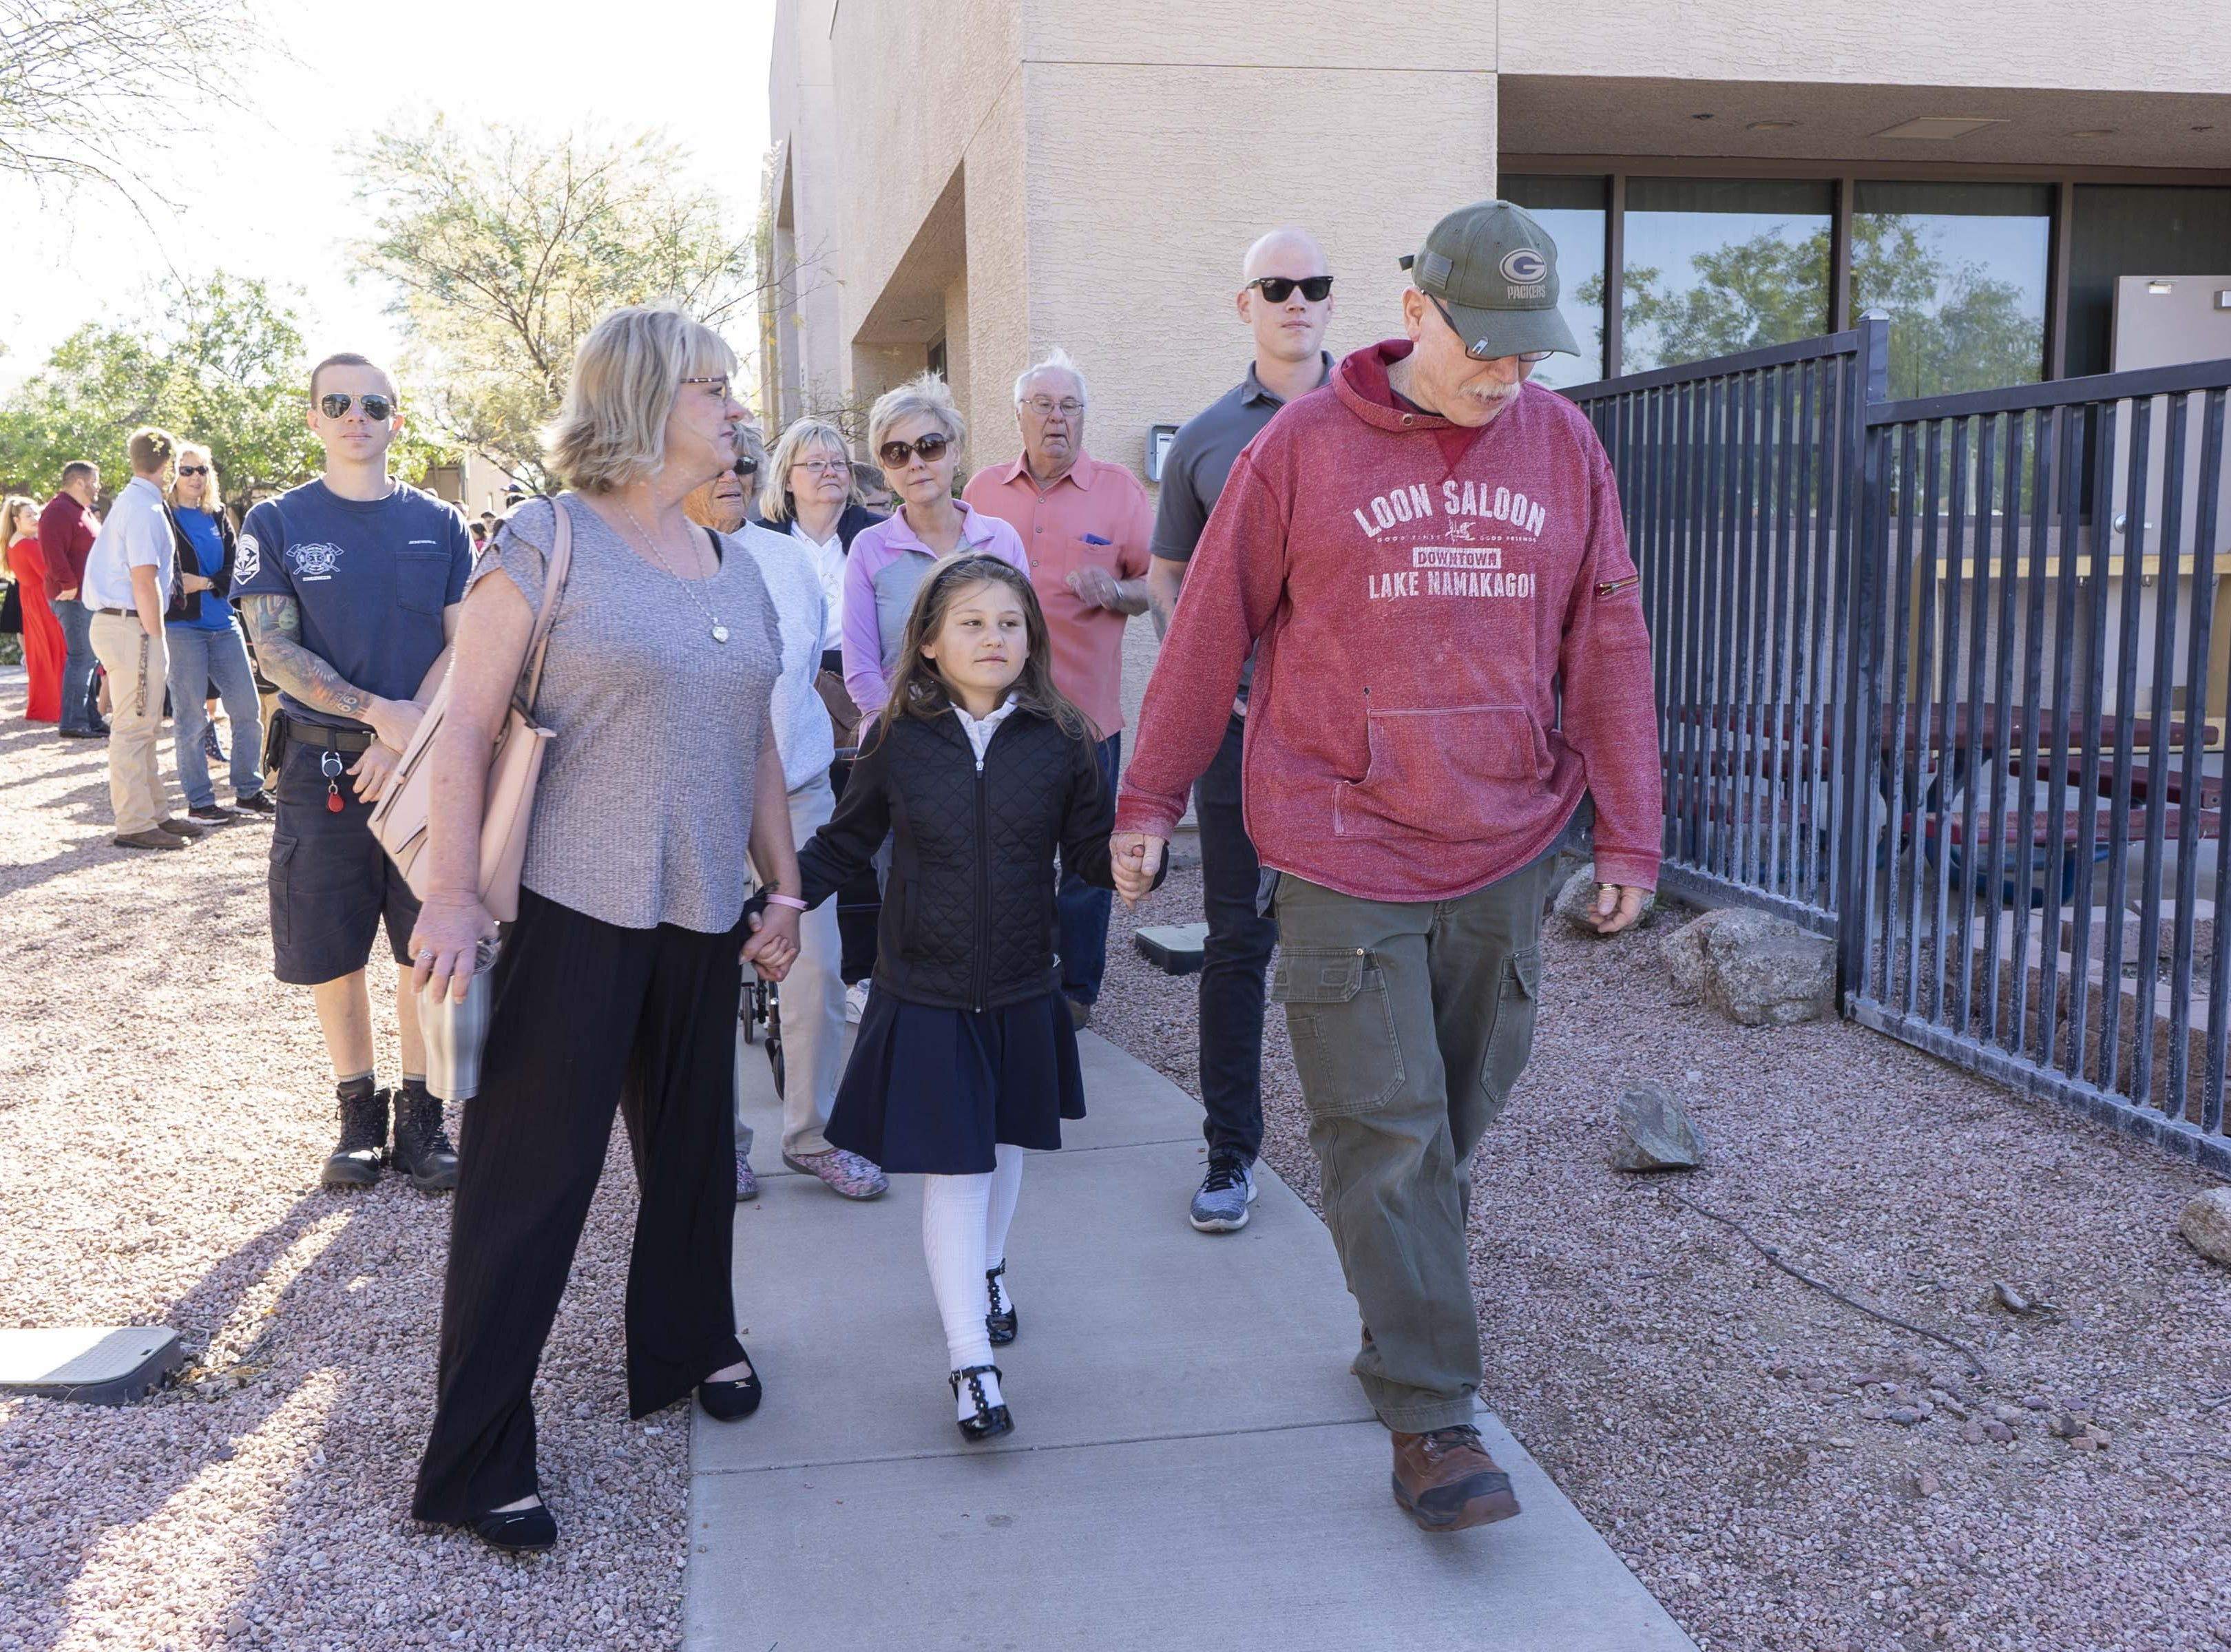 Tim Sullivan, on right, walks with his 6-year-old Abi Sullivan and Adelle Imm ( Tim's sister-in-law) was escorted by Mesa fire crews to Faith Christian School on Wednesday, April 10th, riding in a fire engine #216. Abi is the daughter of Nikki Sullivan, who medically retired in 2015 due to occupational cancer and died last Wednesday. The fire crew will drive Abi,  Tim (Nikki's husband and retired fire captain) to the school.